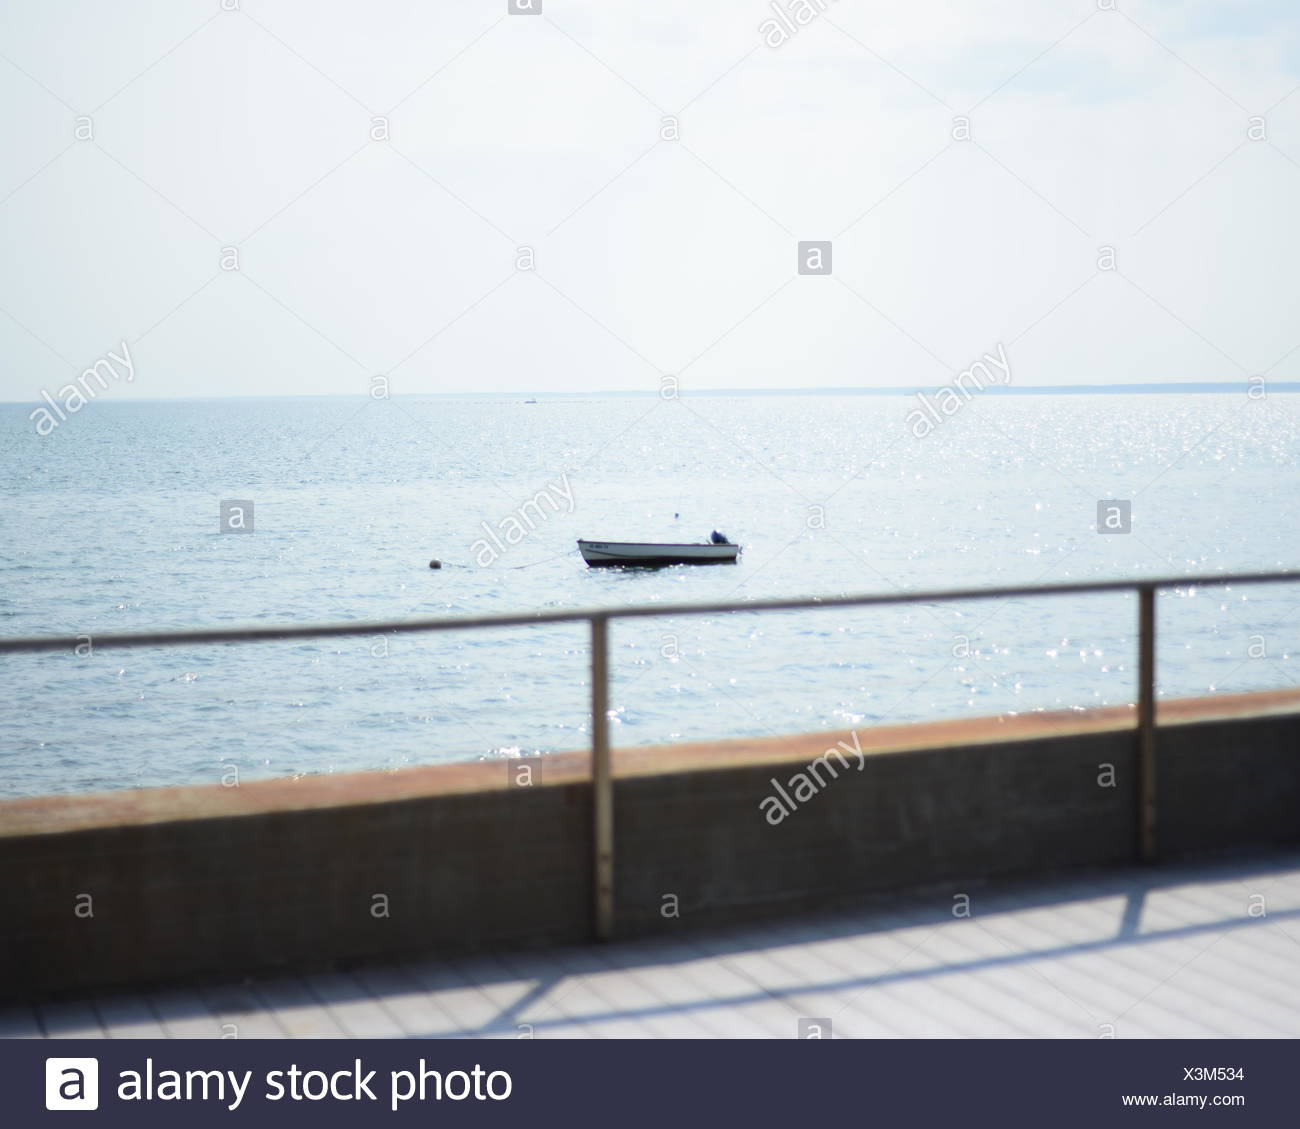 Motorboat Anchored On Sea Against Sky - Stock Image